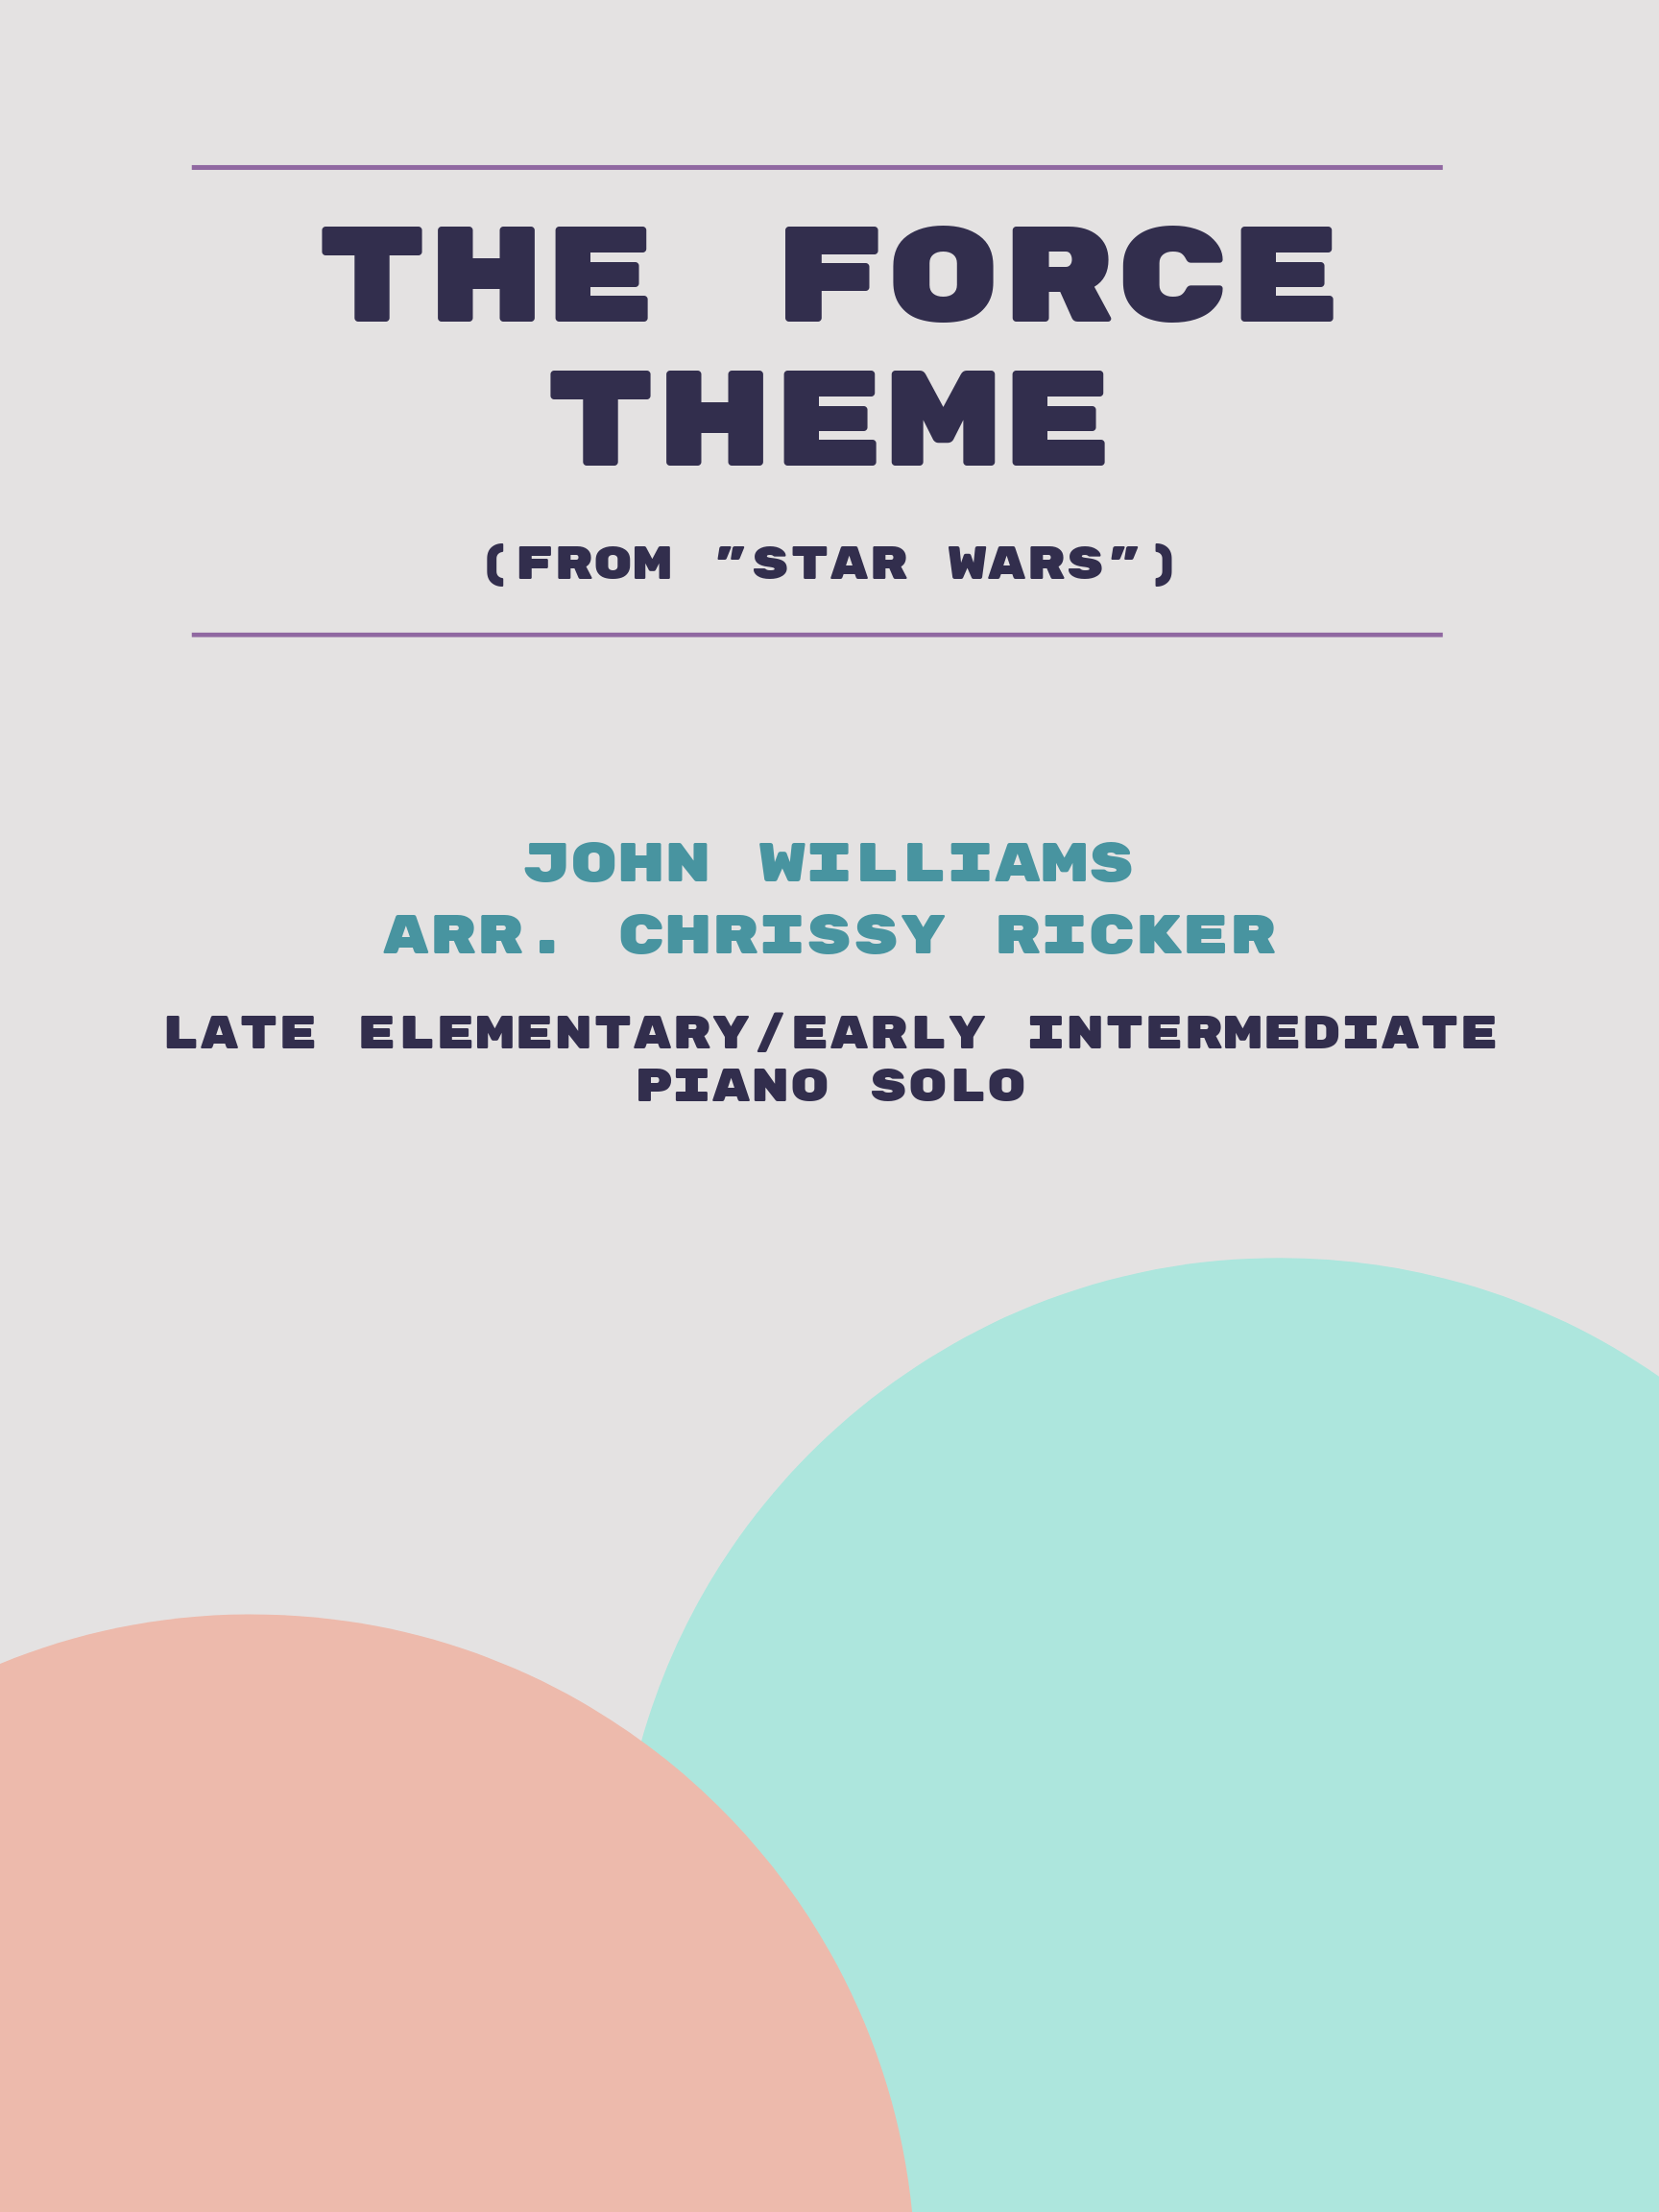 The Force Theme by John Williams